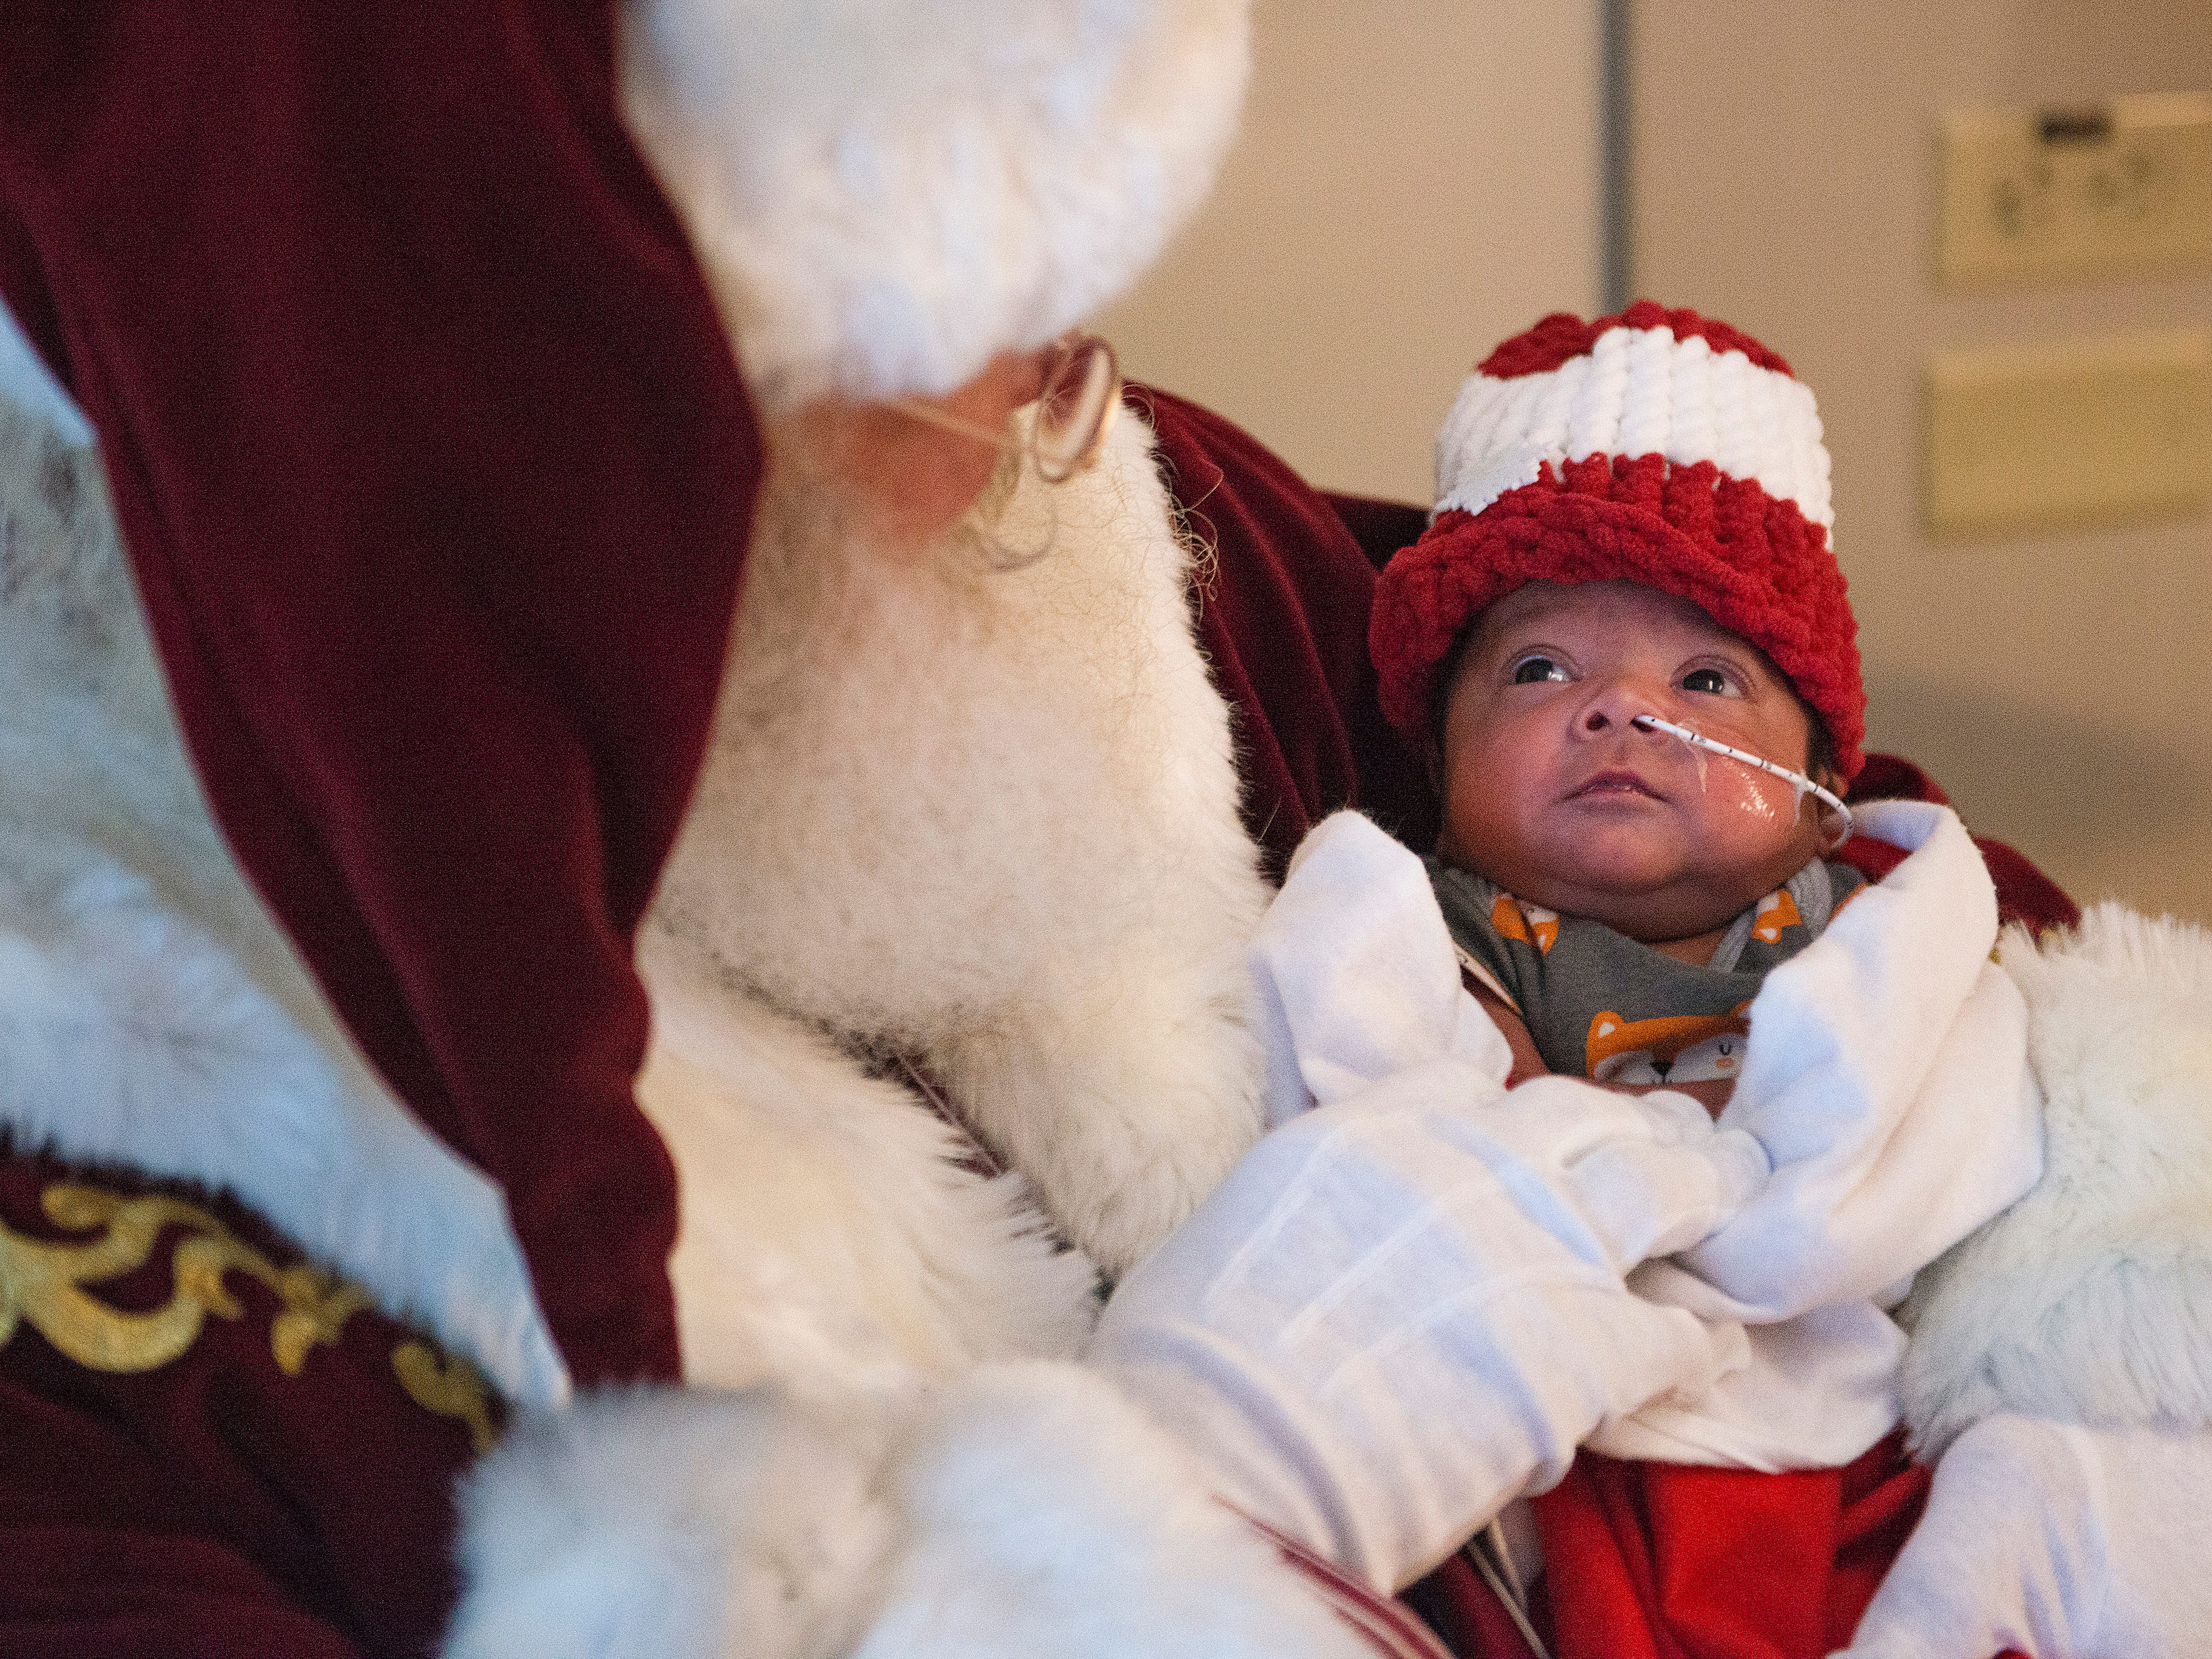 Santa Claus, portrayed by Moose Shattuck, holds Abraham Kong as he visits the neonatal intensive care unit at Poudre Valley Hospital on Tuesday December 18, 2018.